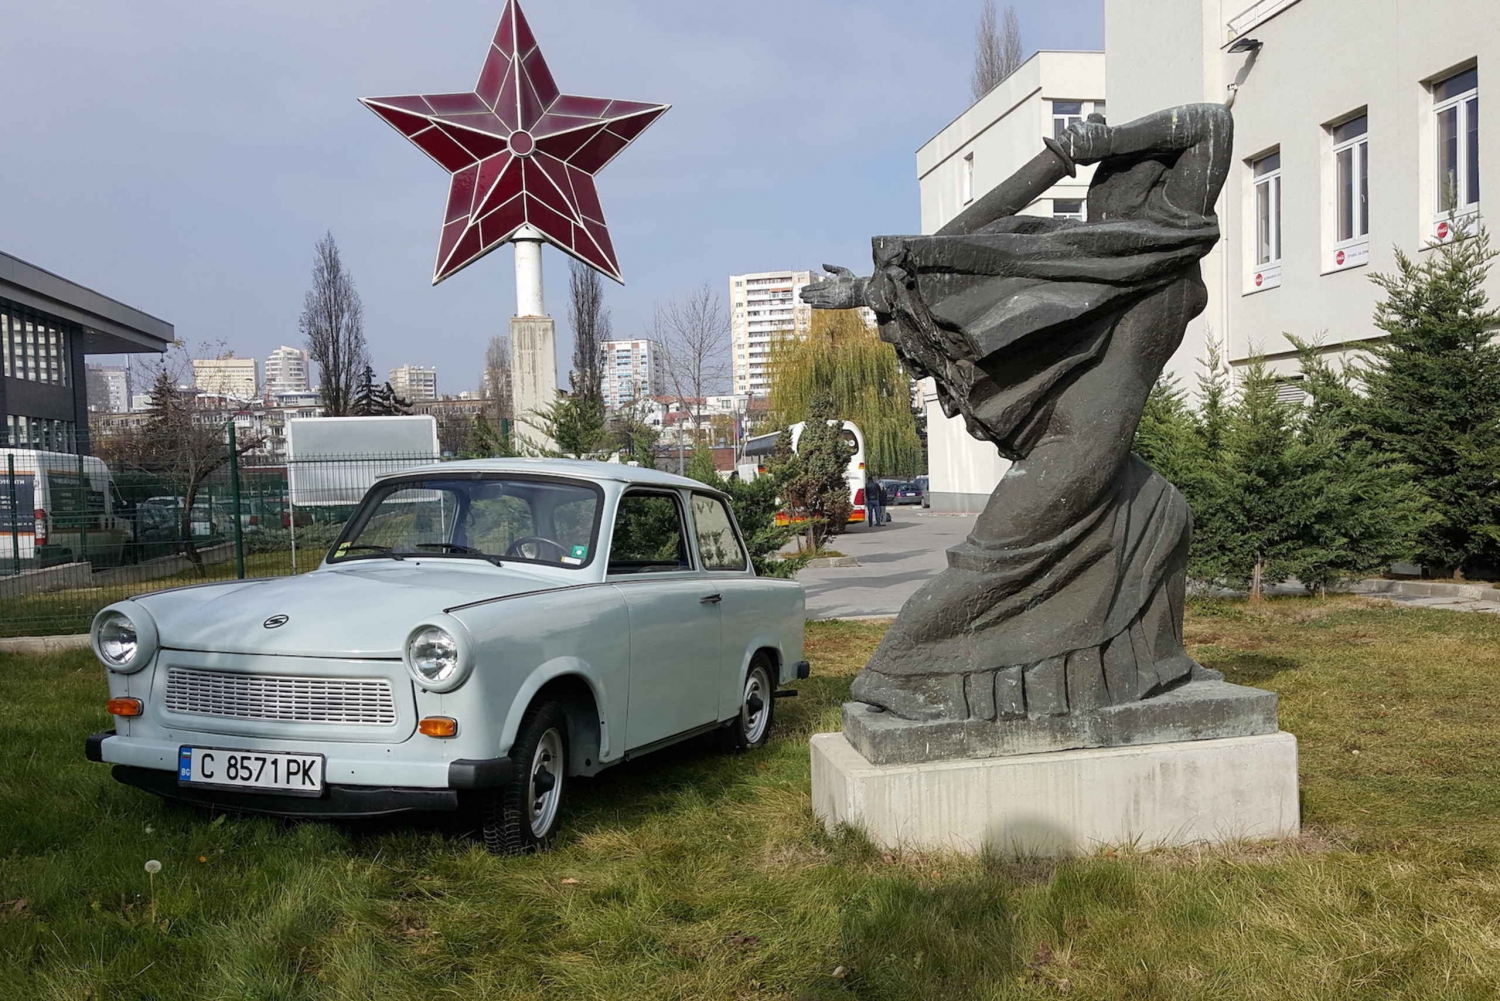 Sofia Tour of Communist history in a trabant next to a Soviet statue